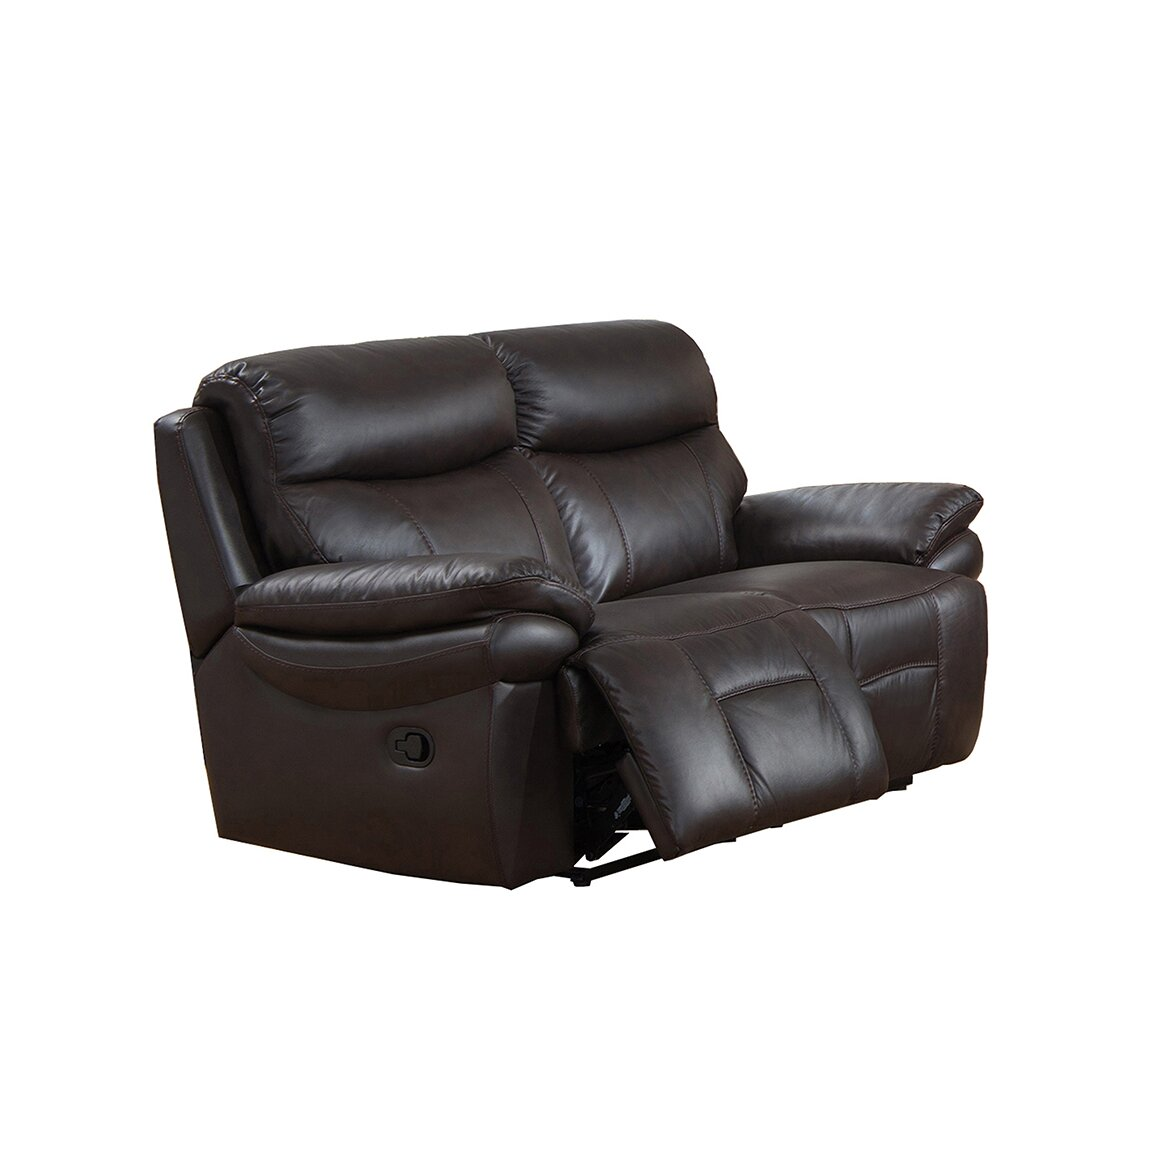 Sofa And Loveseat Recliner Sets Brown Reclining Sofa